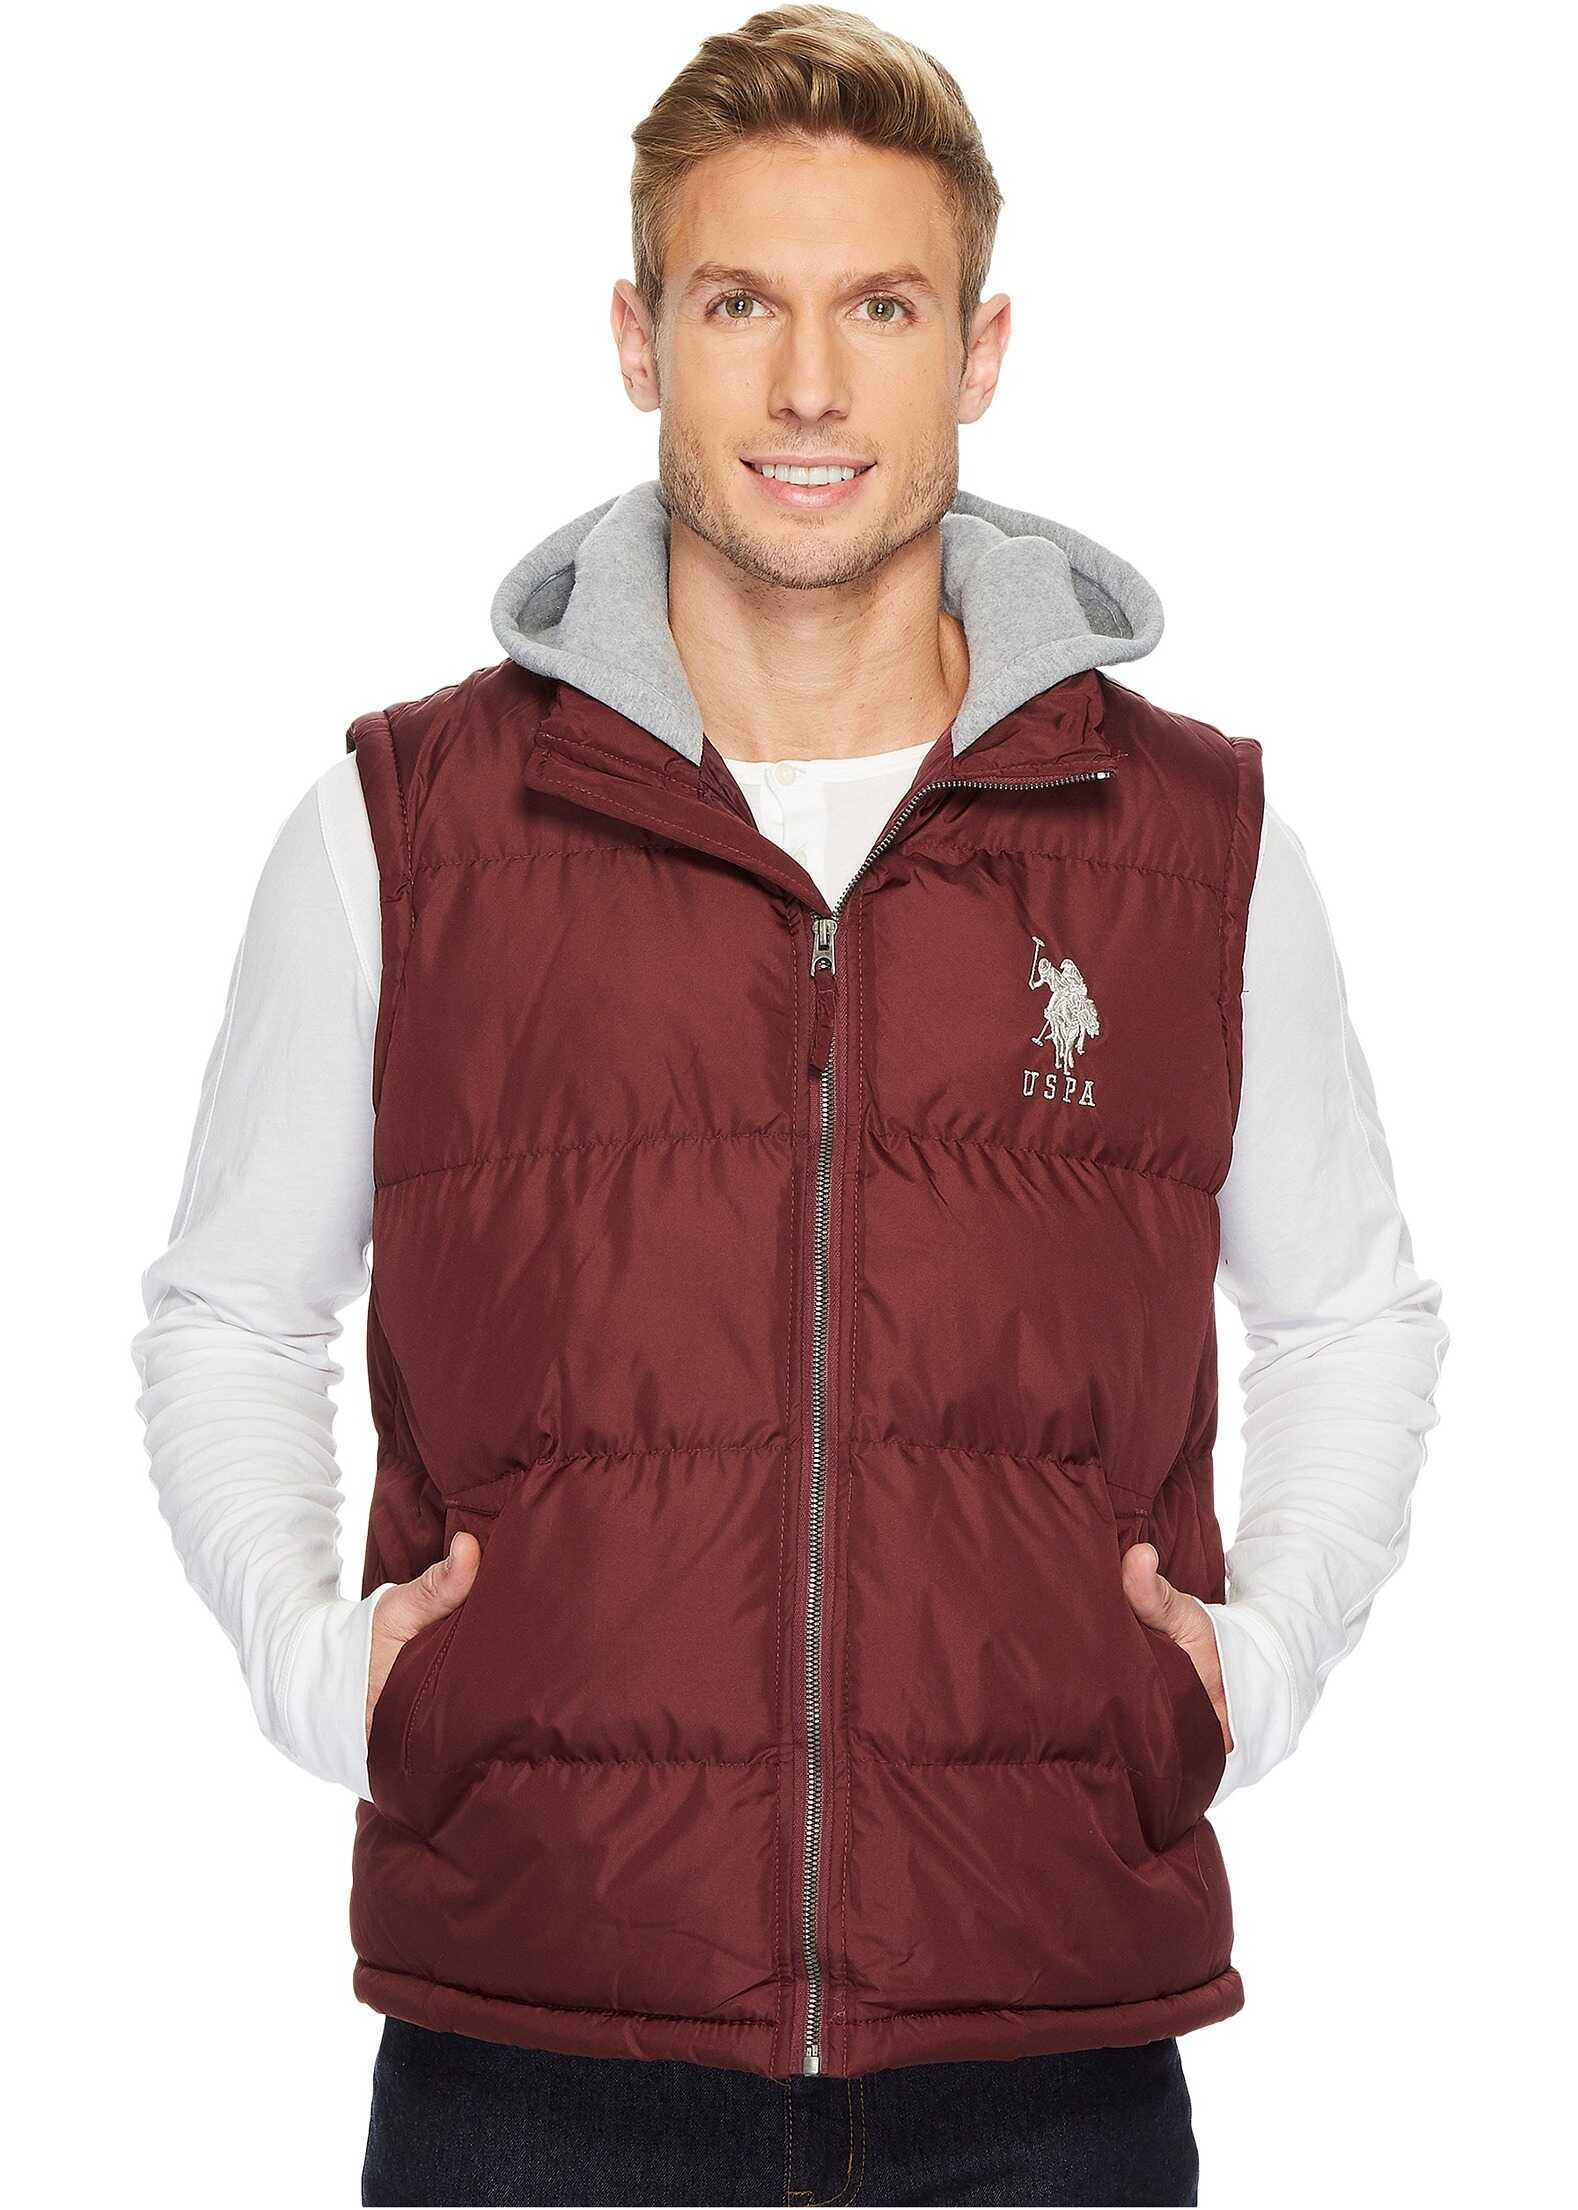 U.S. POLO ASSN. Basic Puffer Vest with Fleece Hood East Burgundy